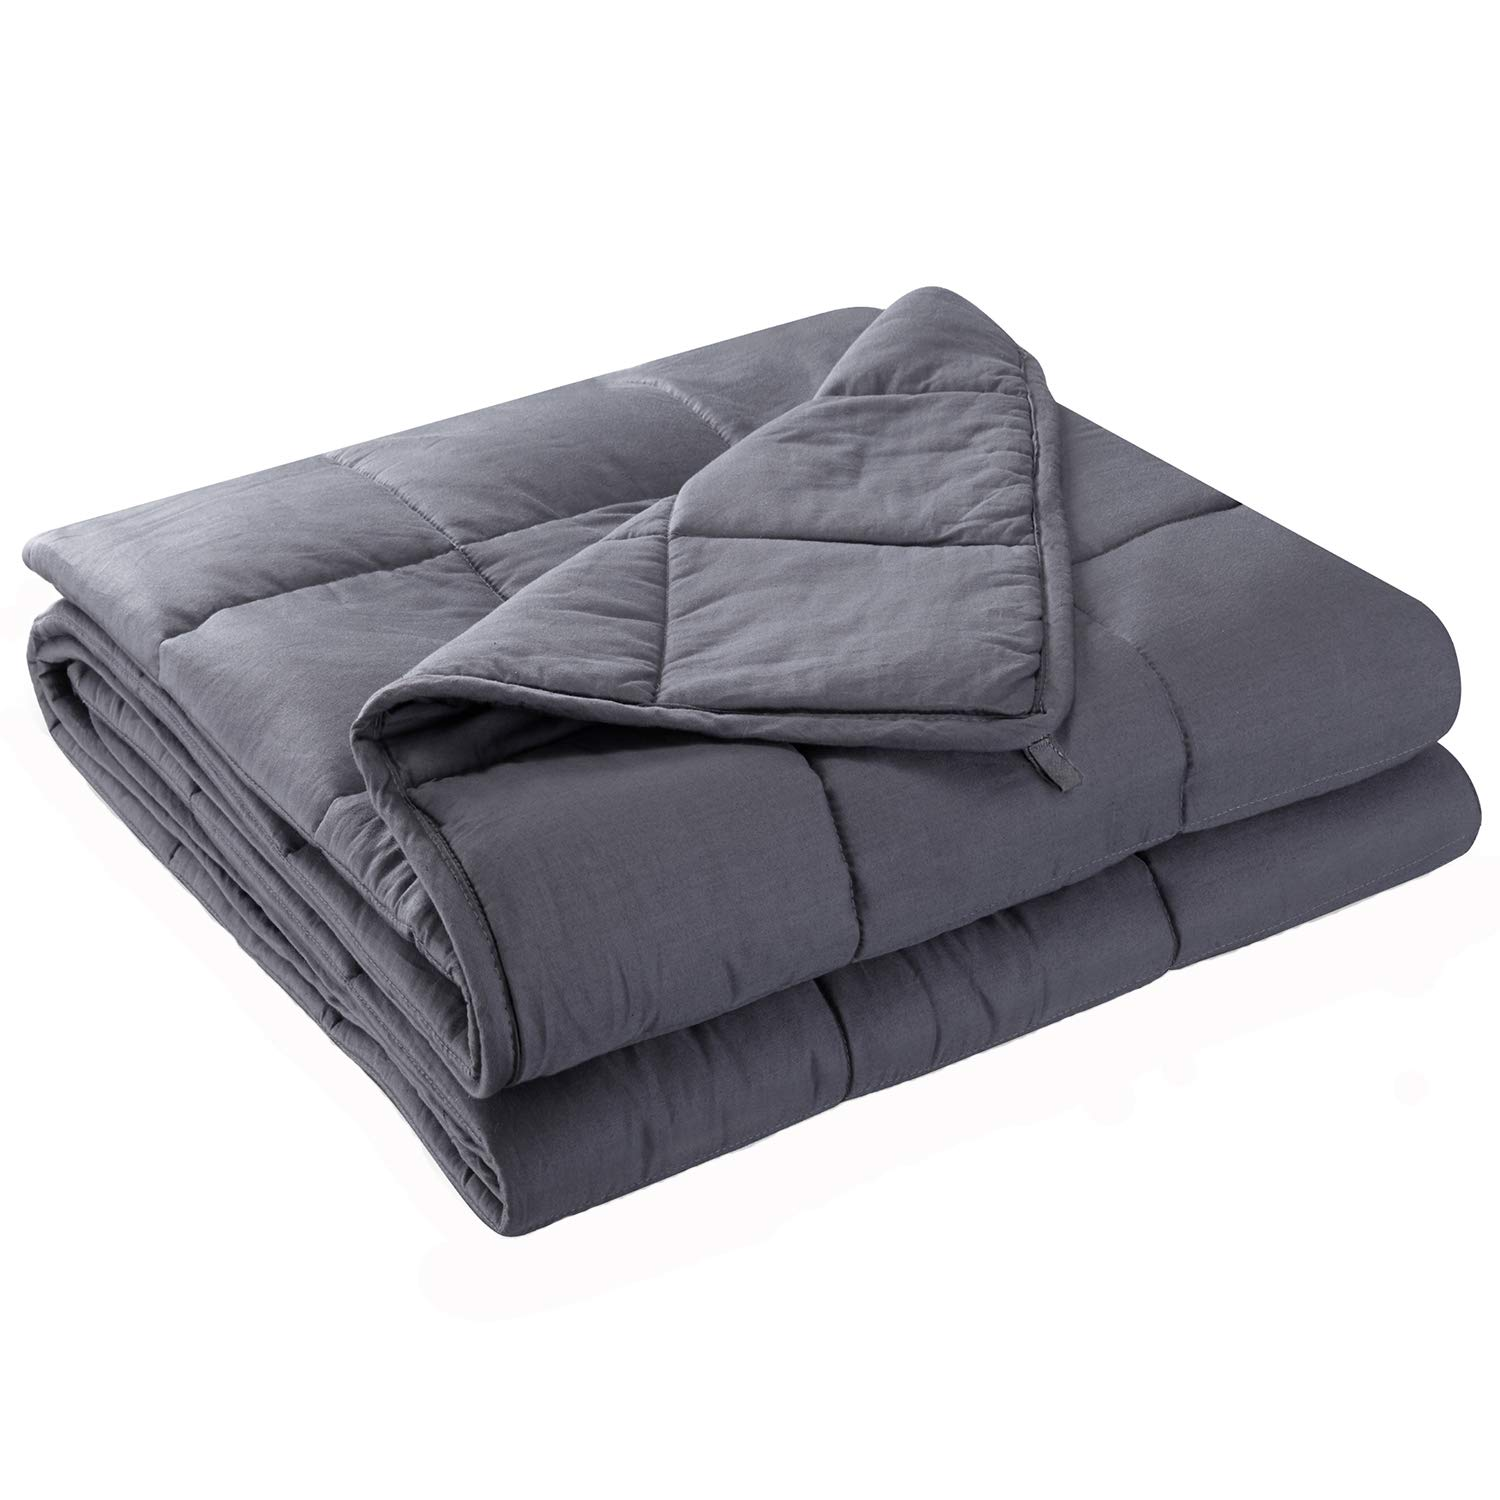 Simple Style Bedding Organic Cotton Duvet Cover Anjee Removable Duvet Cover for Weighted Blanket JUST Cover Ultra Soft and Easy Care Grey 150 x 200 cm